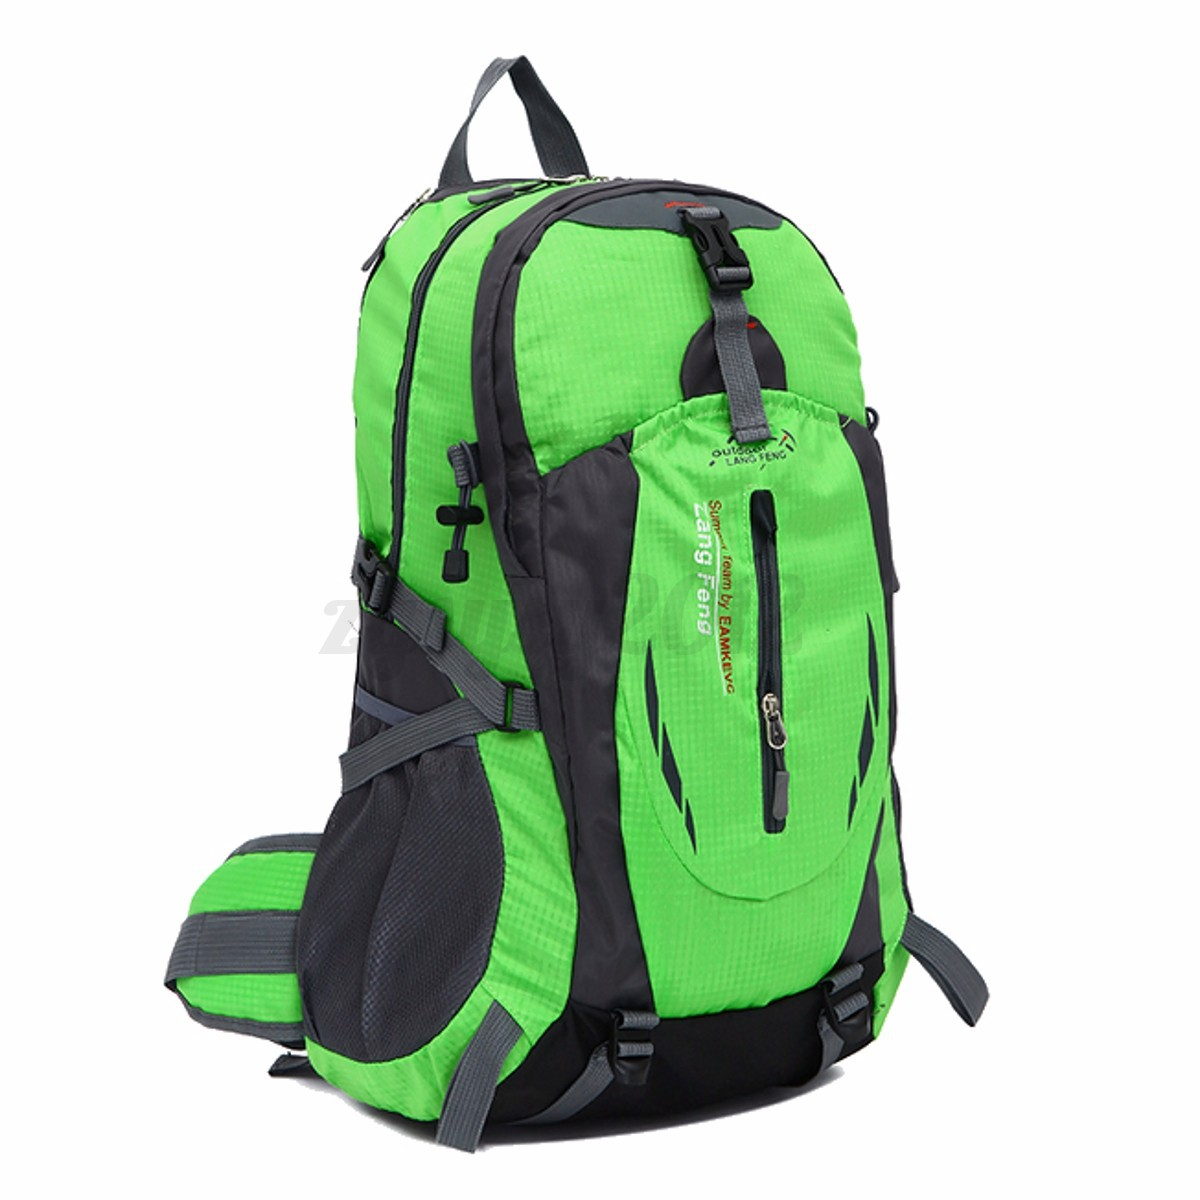 35l backpack rucksack bag hiking outdoor waterproof for Outdoor rucksack